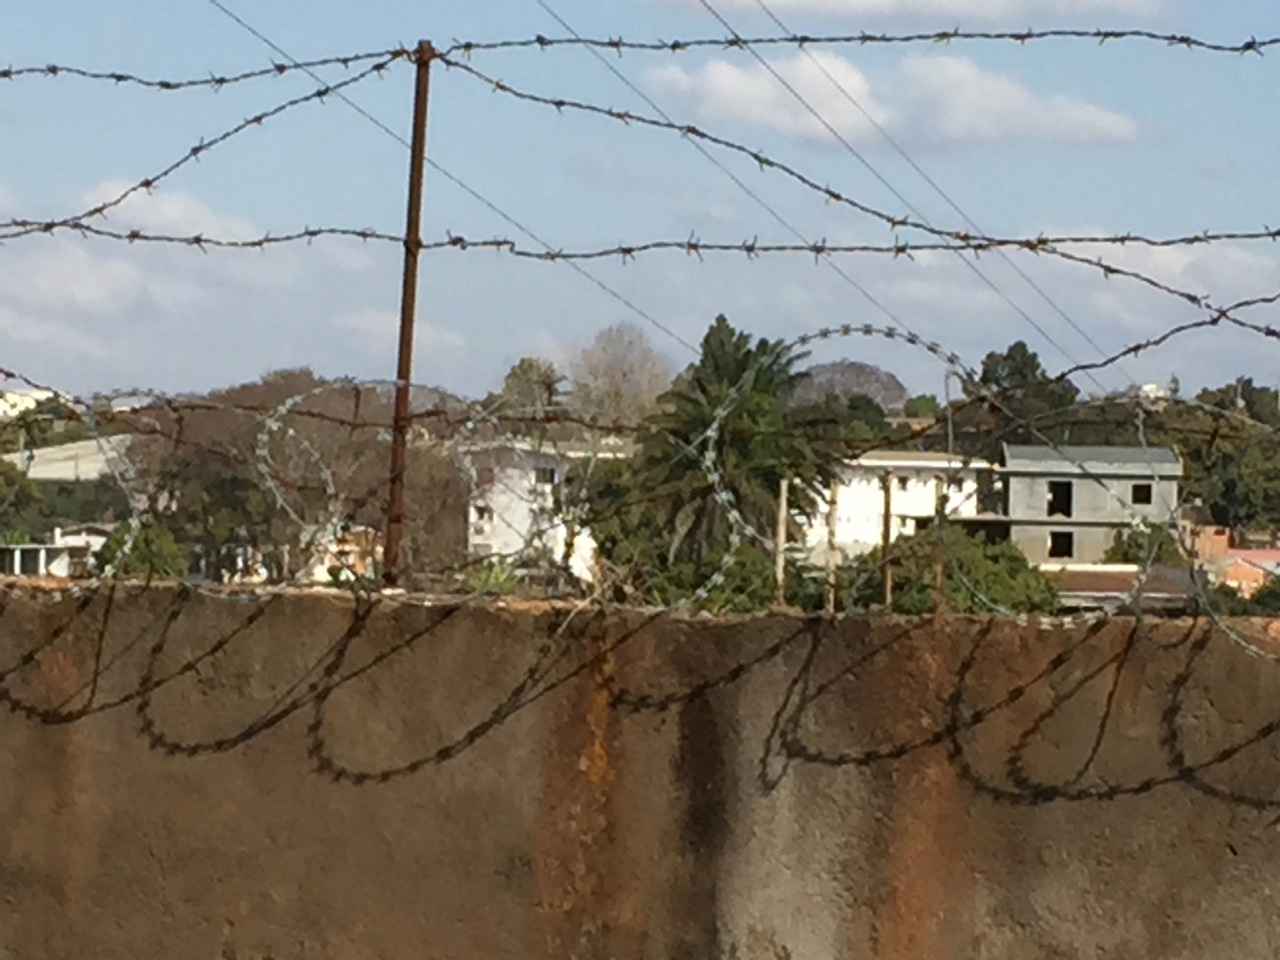 Razor wire topped every wall enclosing the compound that is named Hotel Paon d'or in Antananarivo.